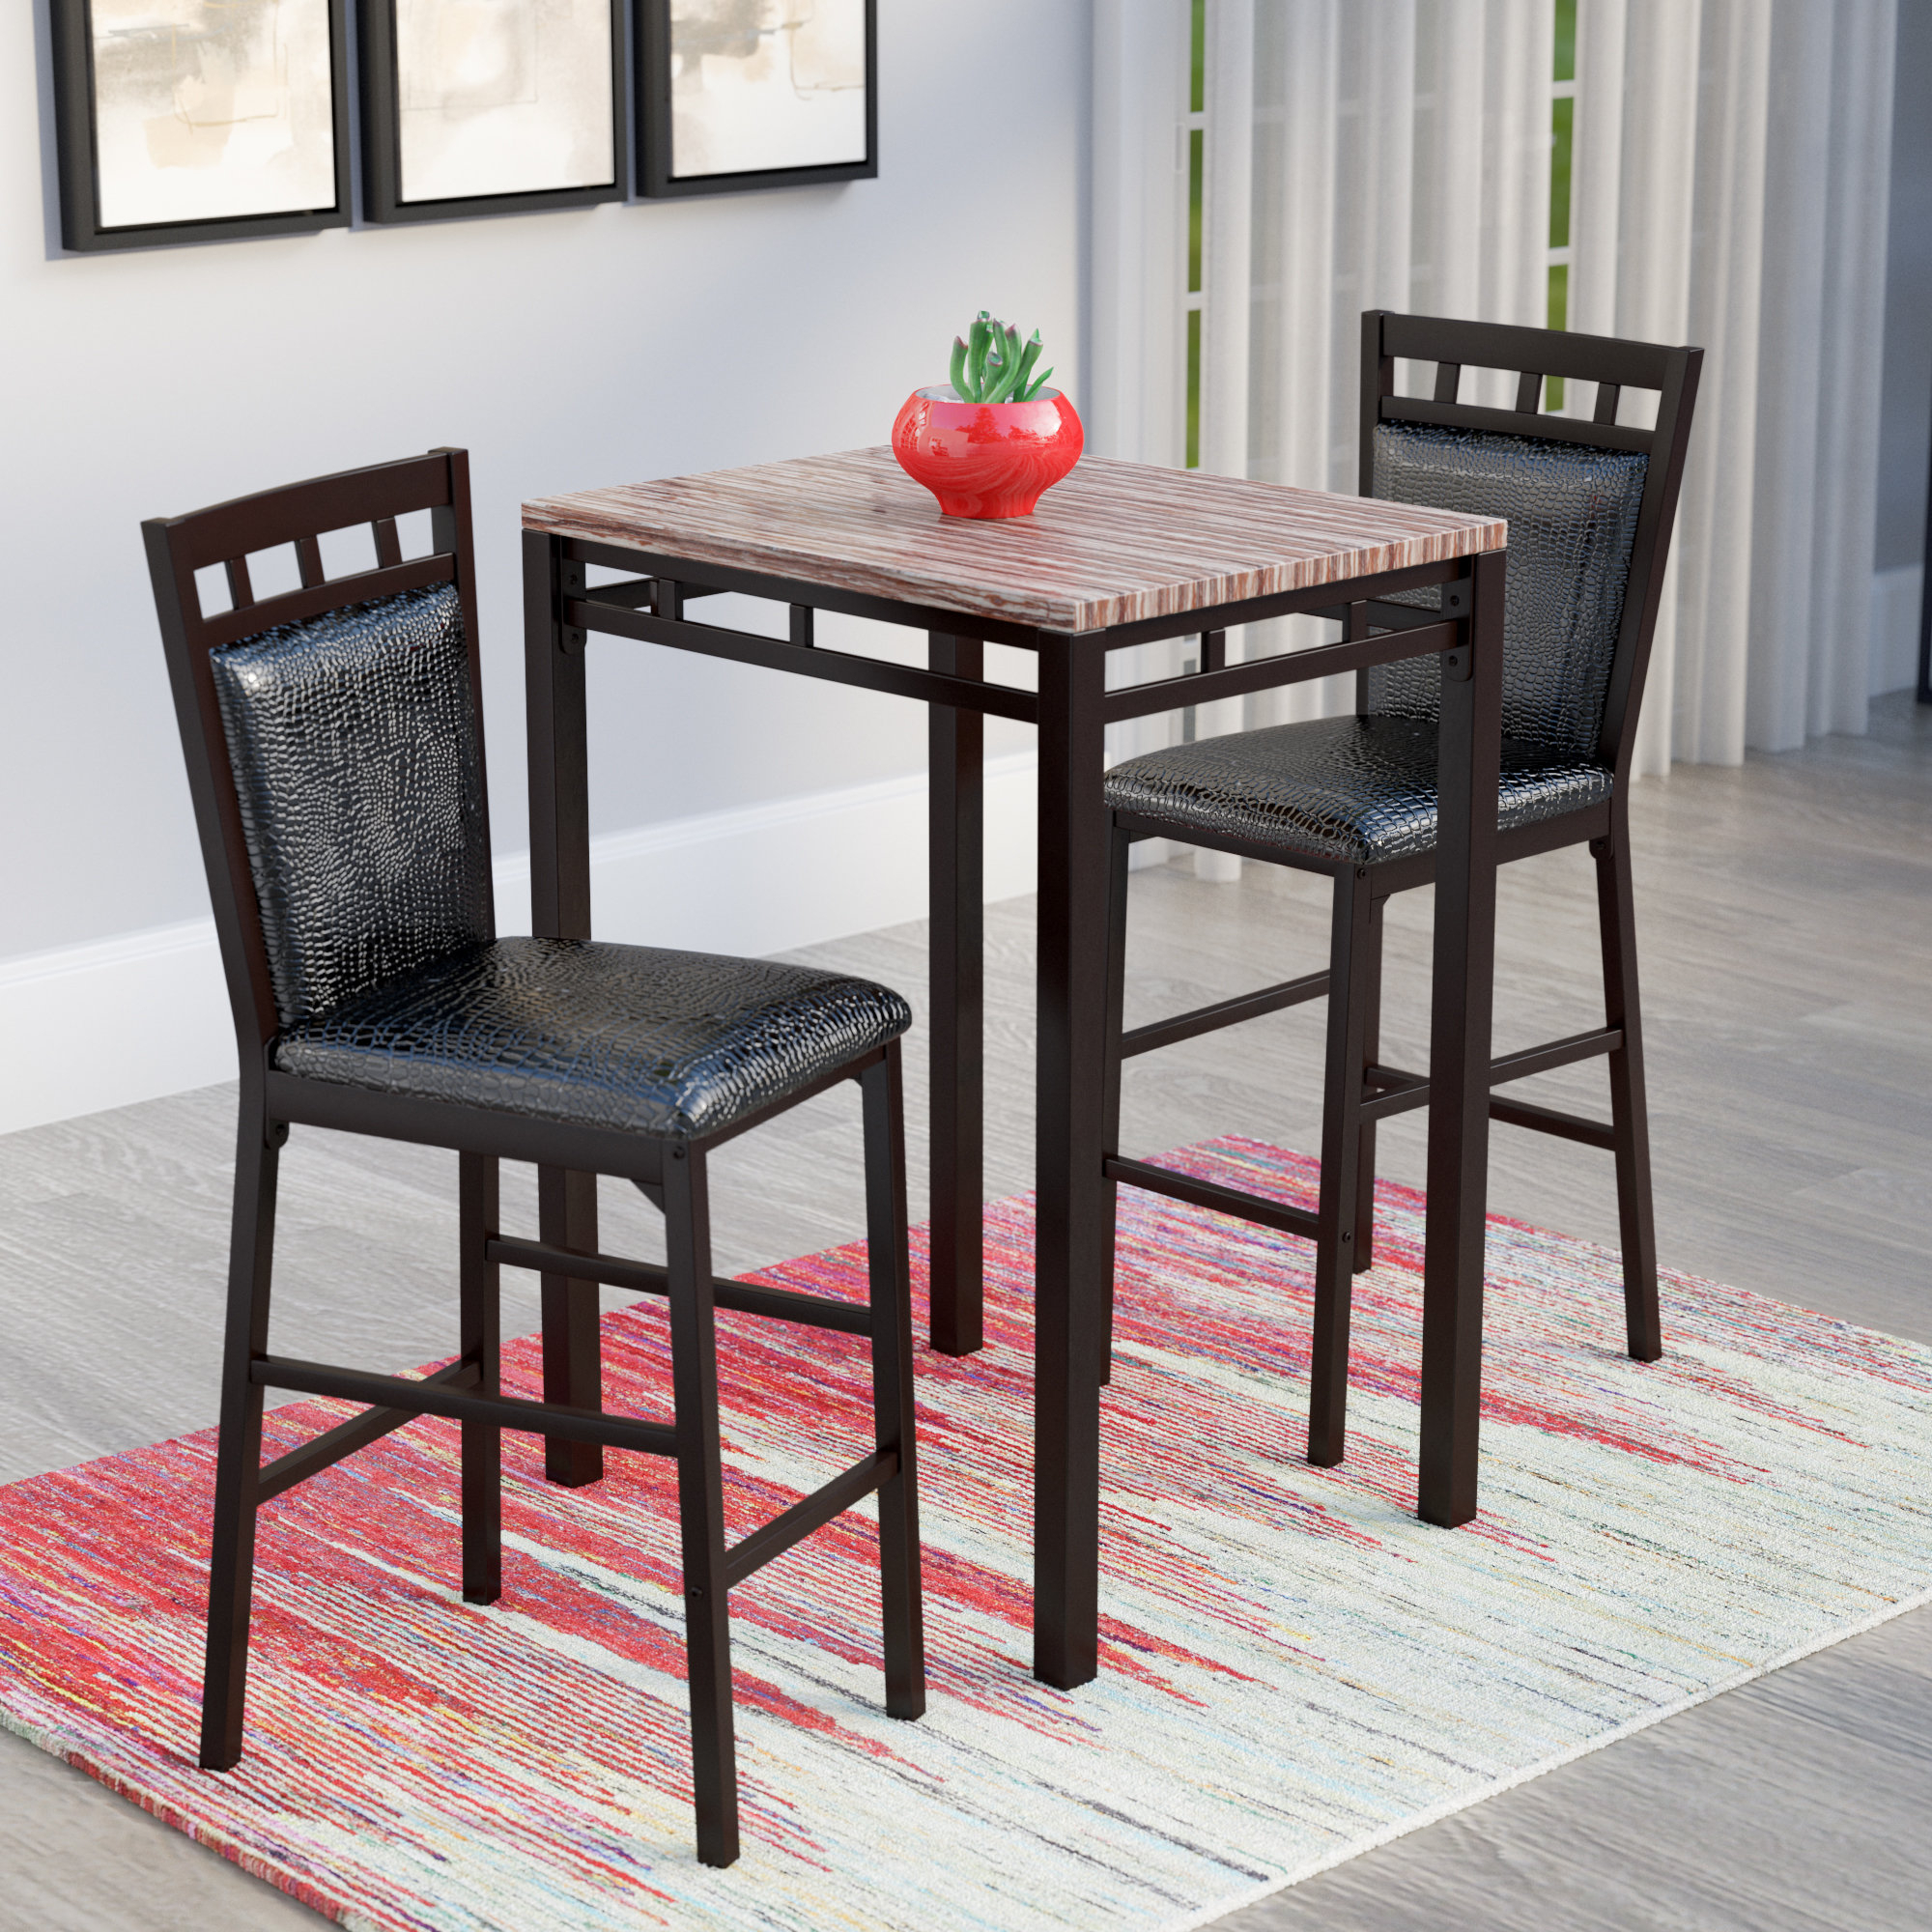 Miskell 3 Piece Dining Sets With Regard To Well Known Latitude Run Eric 3 Piece Pub Table Set & Reviews (View 14 of 25)